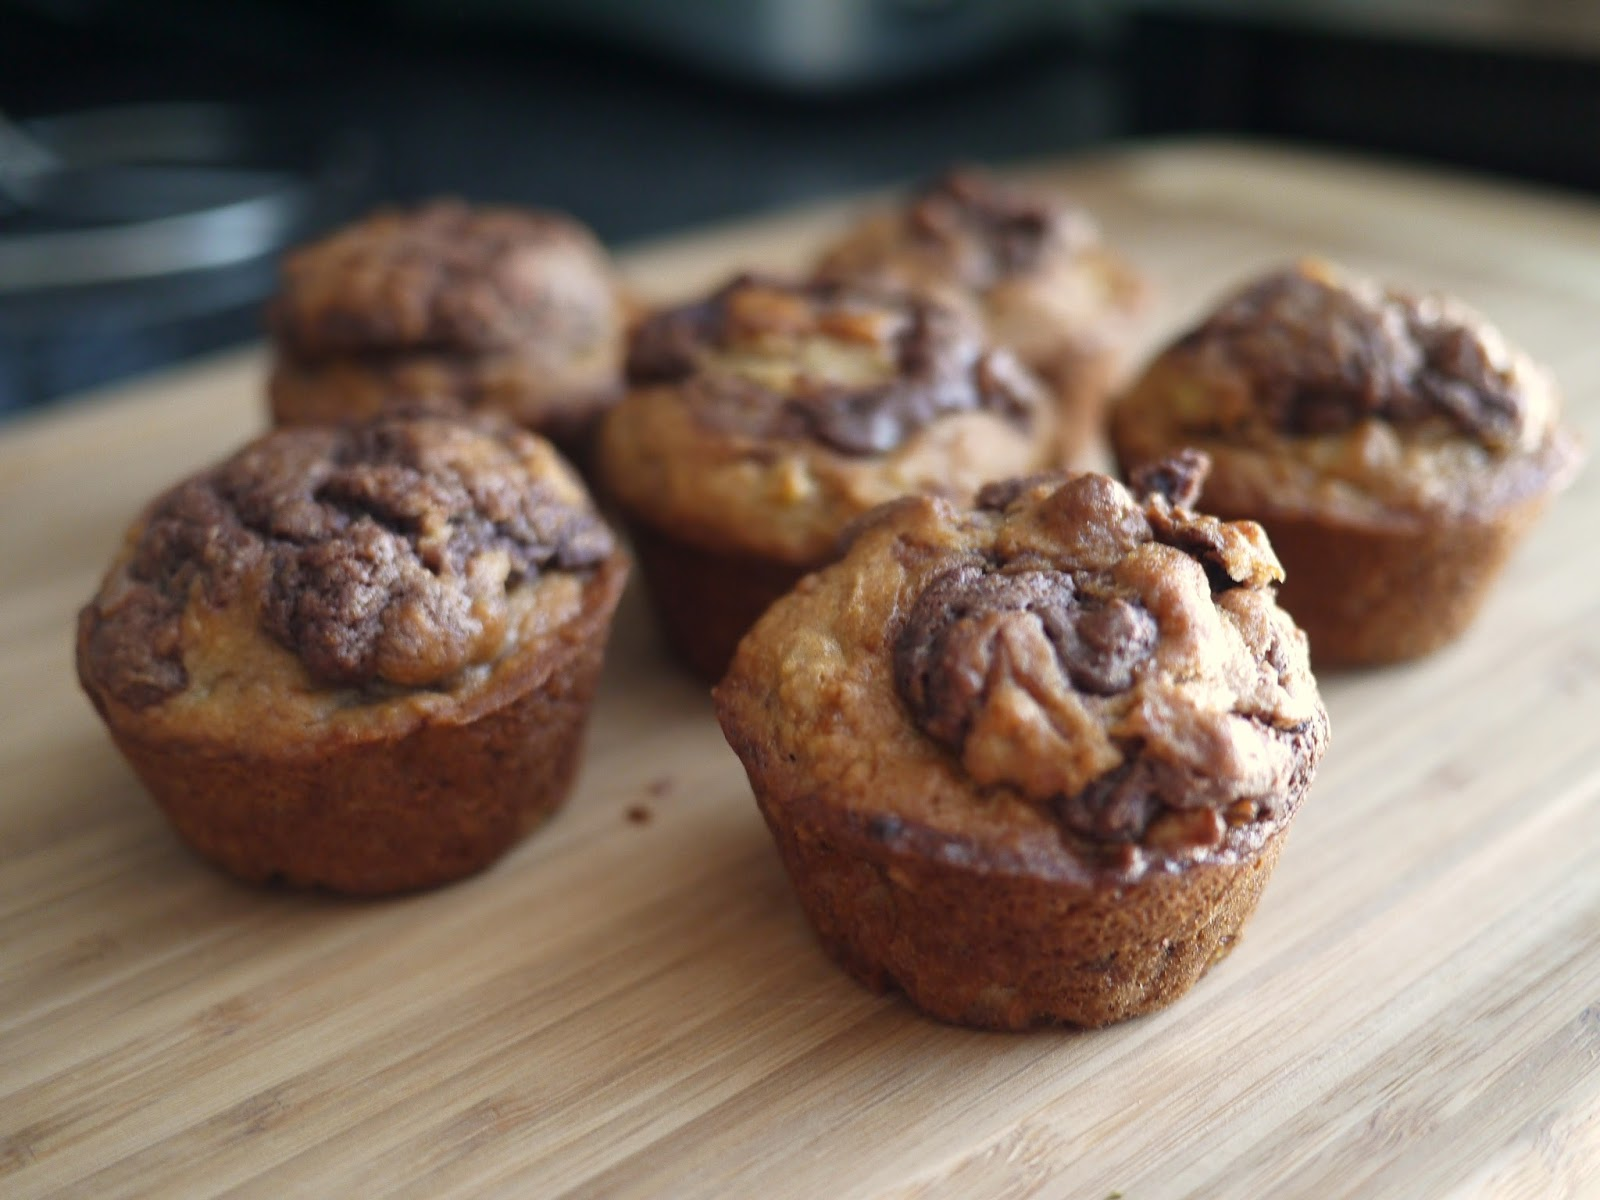 Hazelnut swirl banana nut muffins the tasteful me the recipe is adapted from tyler florence on food network but with a twist chocolaty swirl three ripe bananas ensure soft moist bites every time a forumfinder Gallery